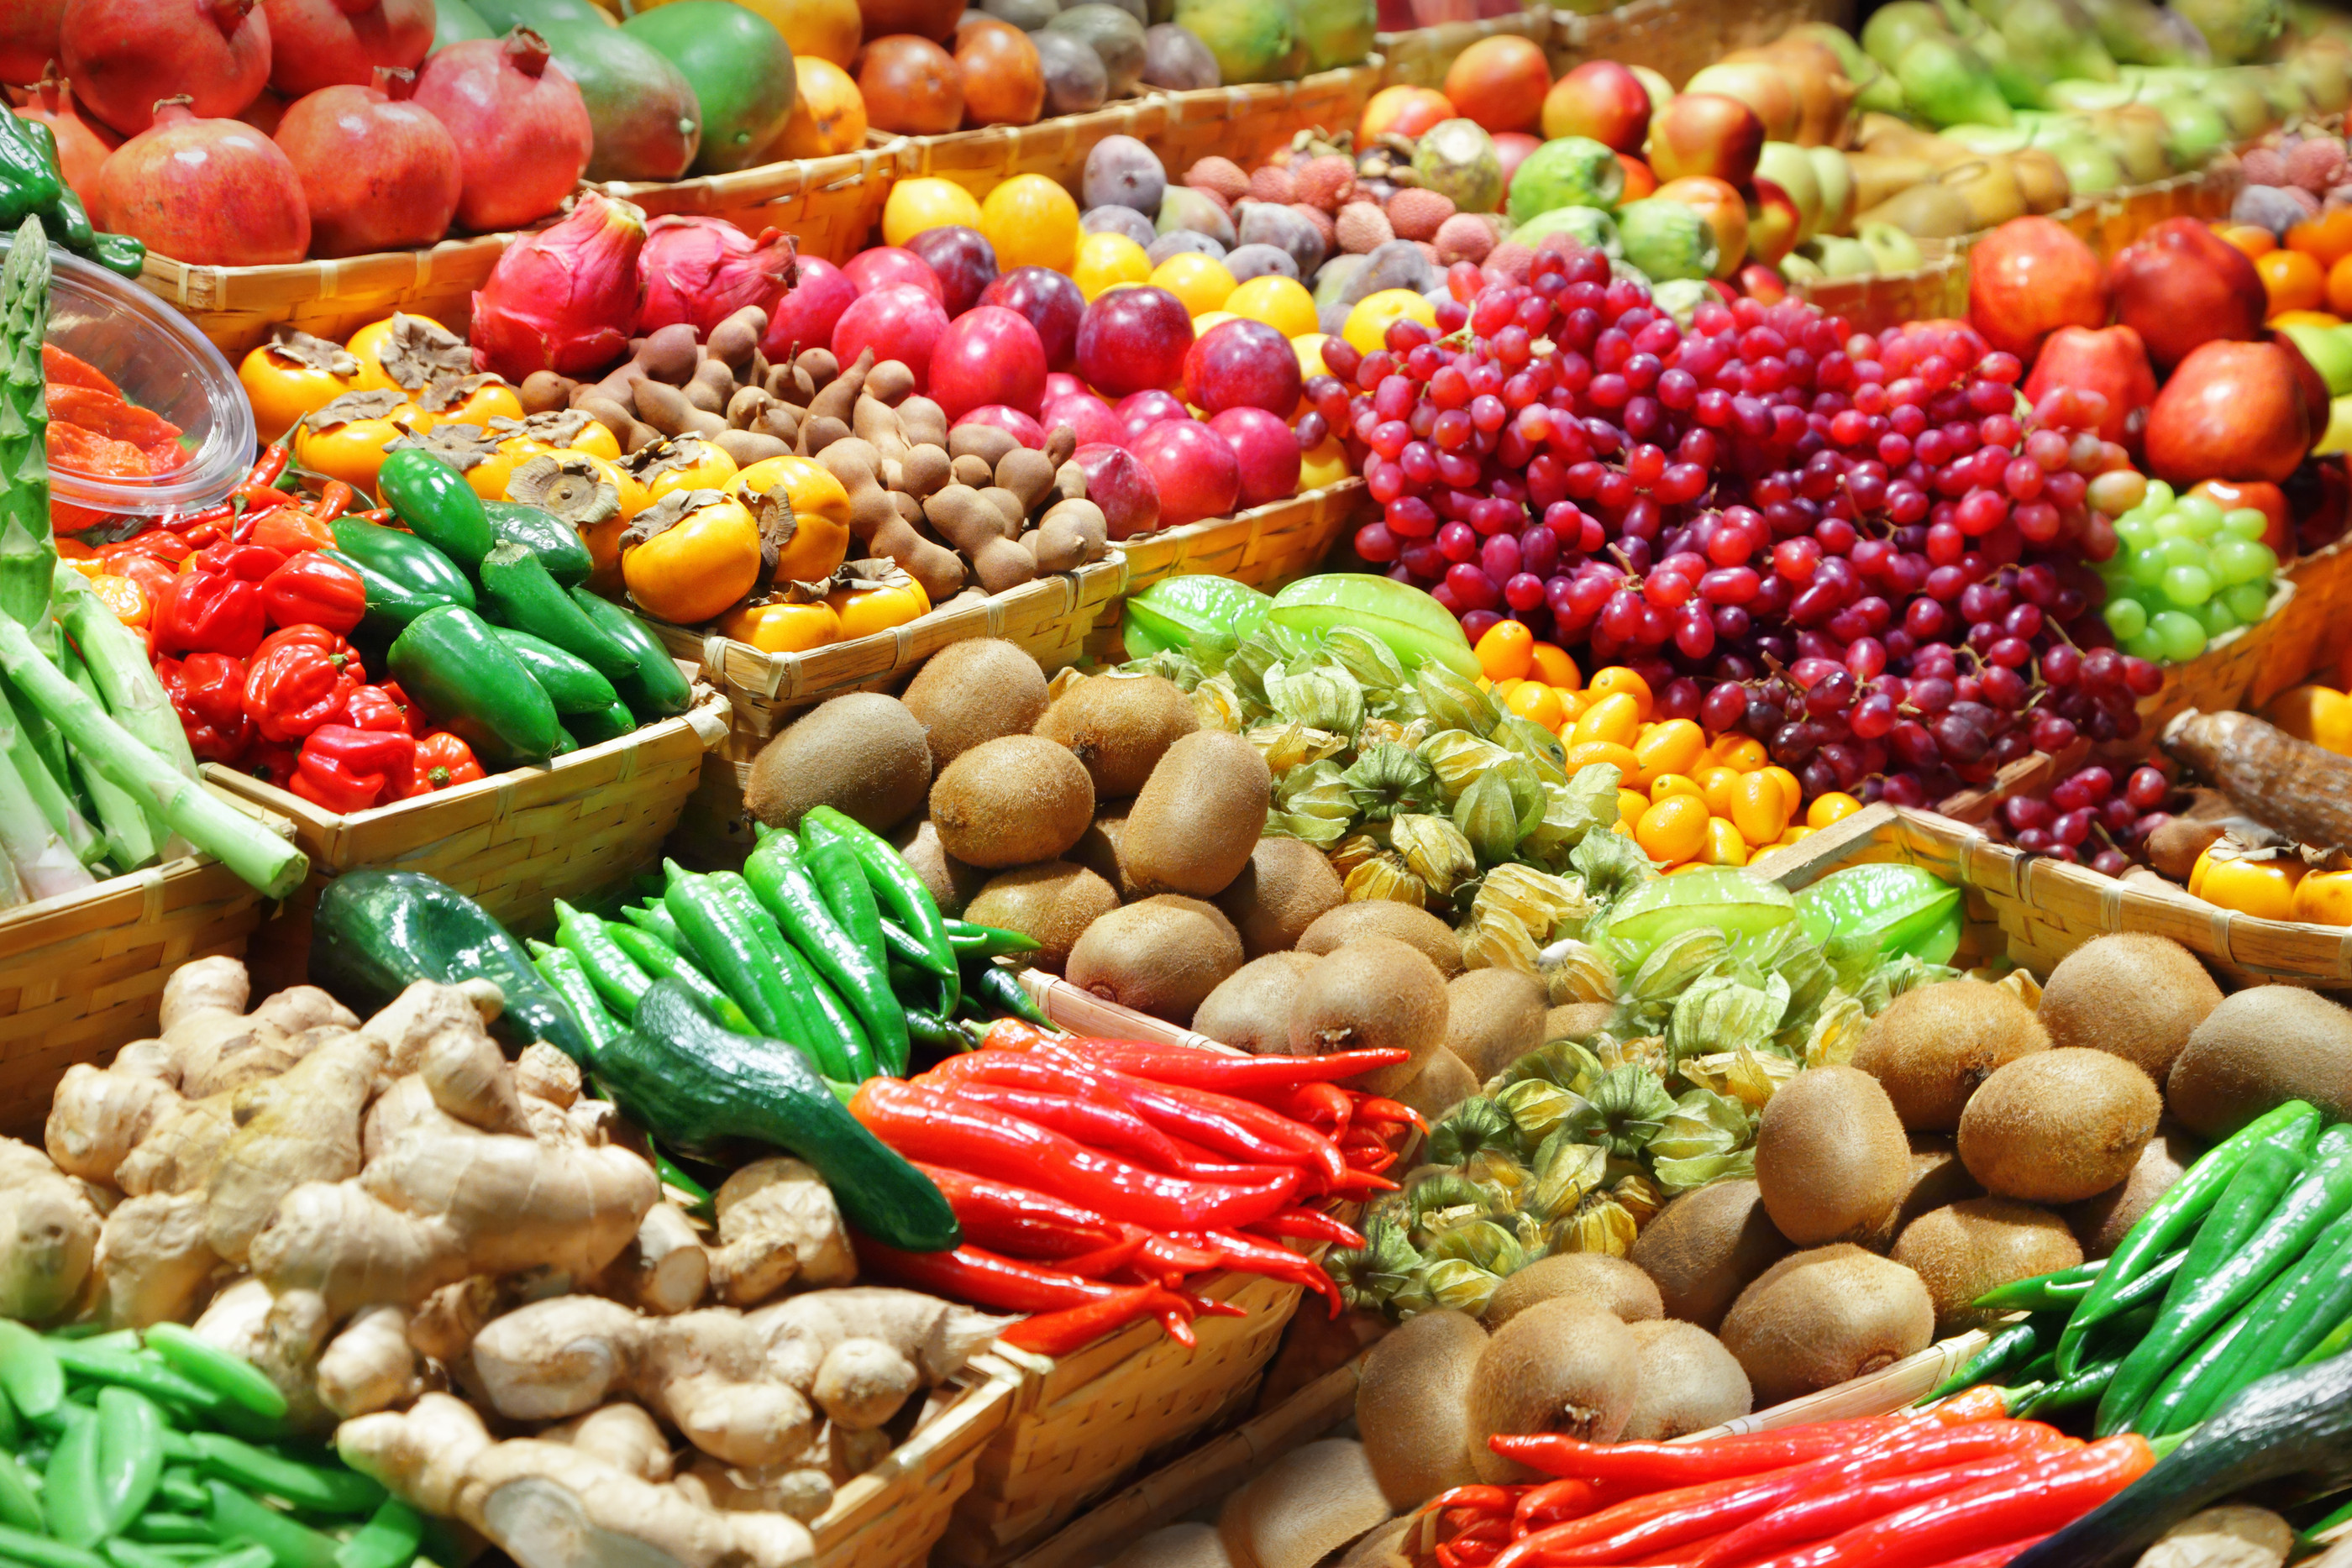 bigstock-Fruits-And-Vegetables-36840977